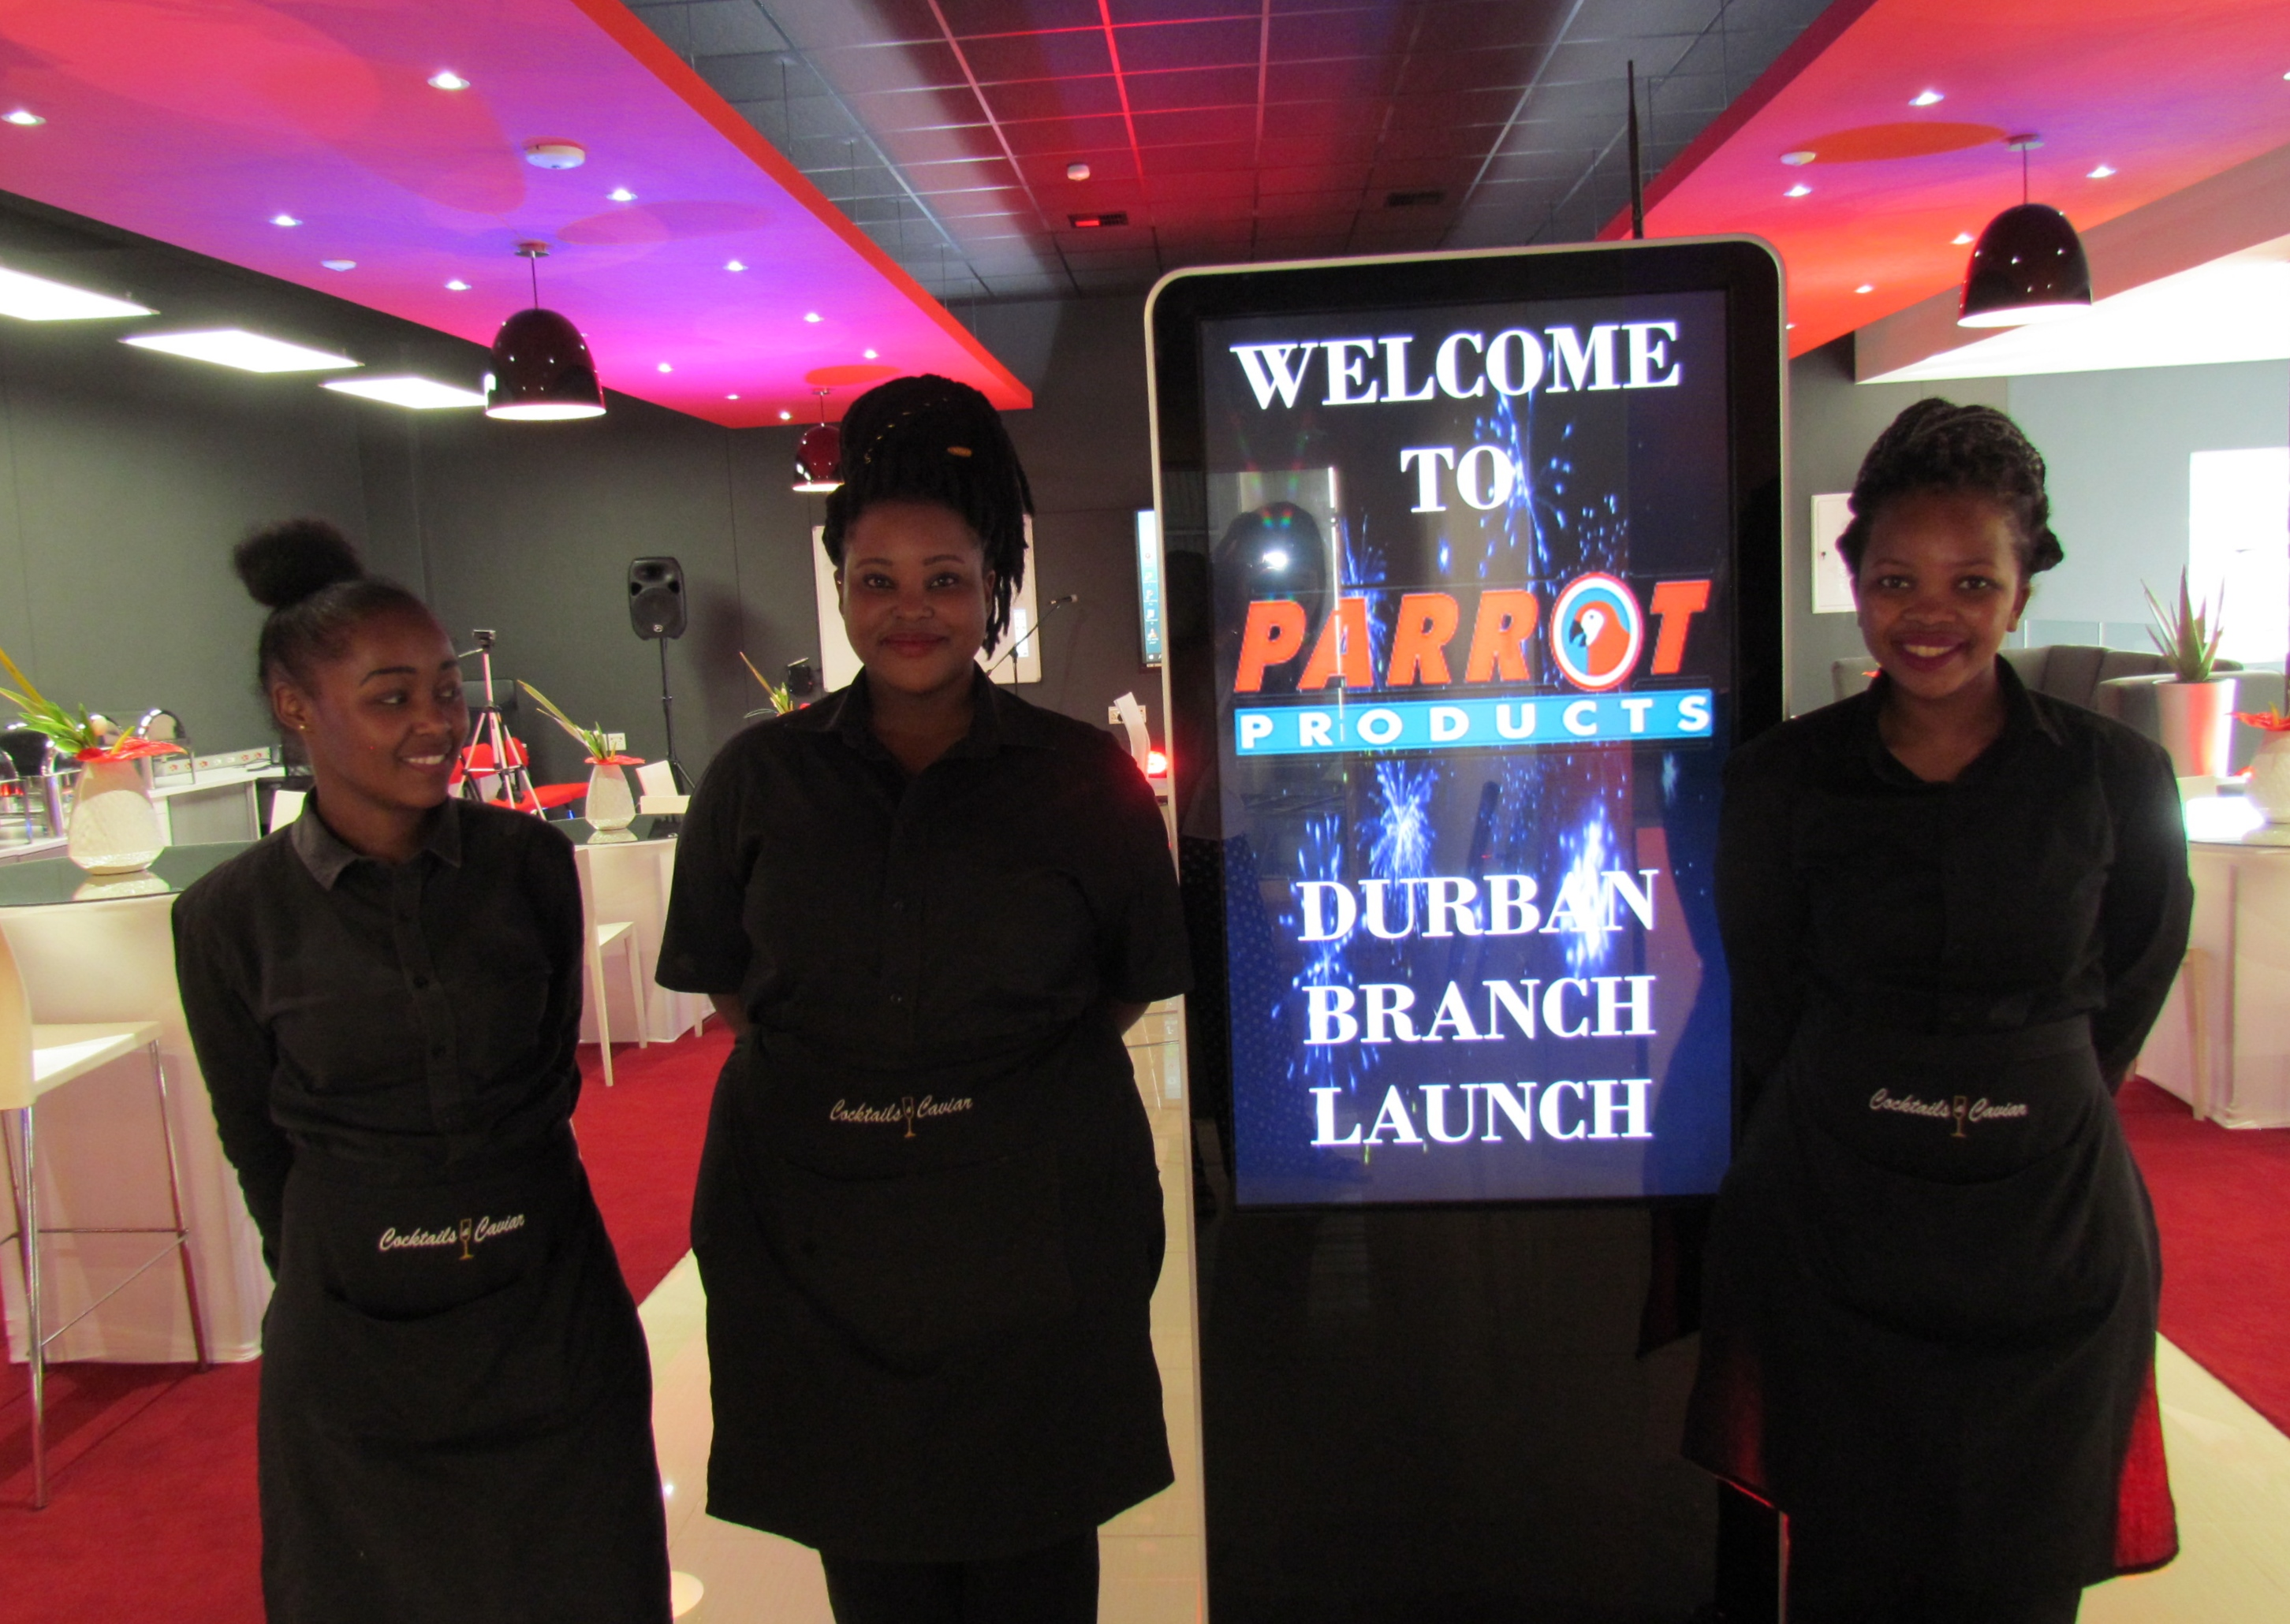 Parrot Stationary branch launch in Durban